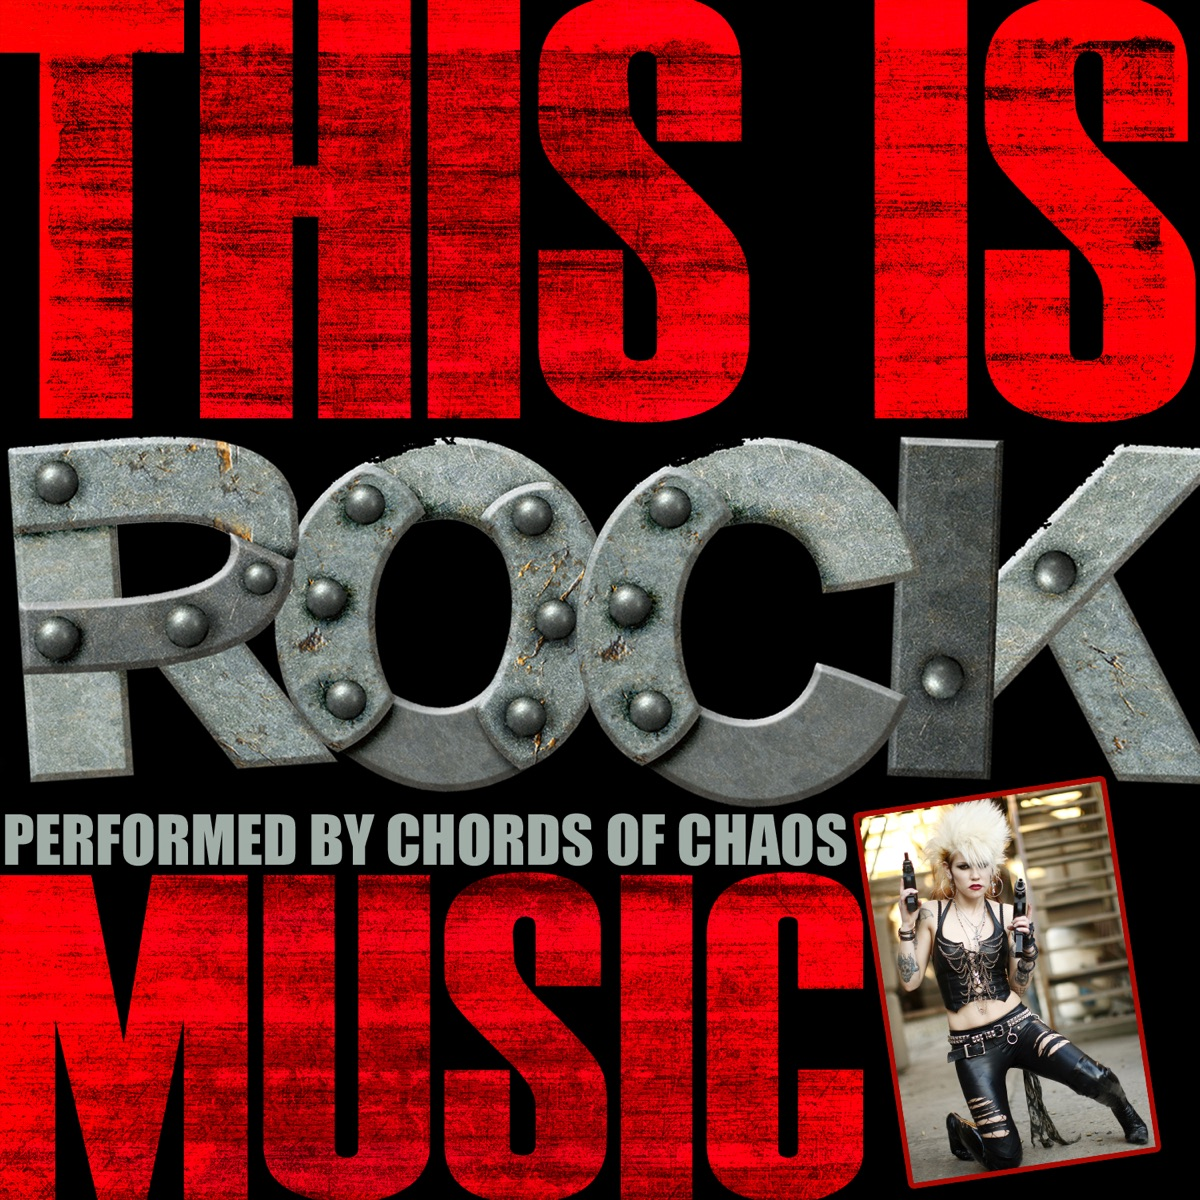 Rock Music Cover This Is Rock Music Album Cover By Chords Of Chaos